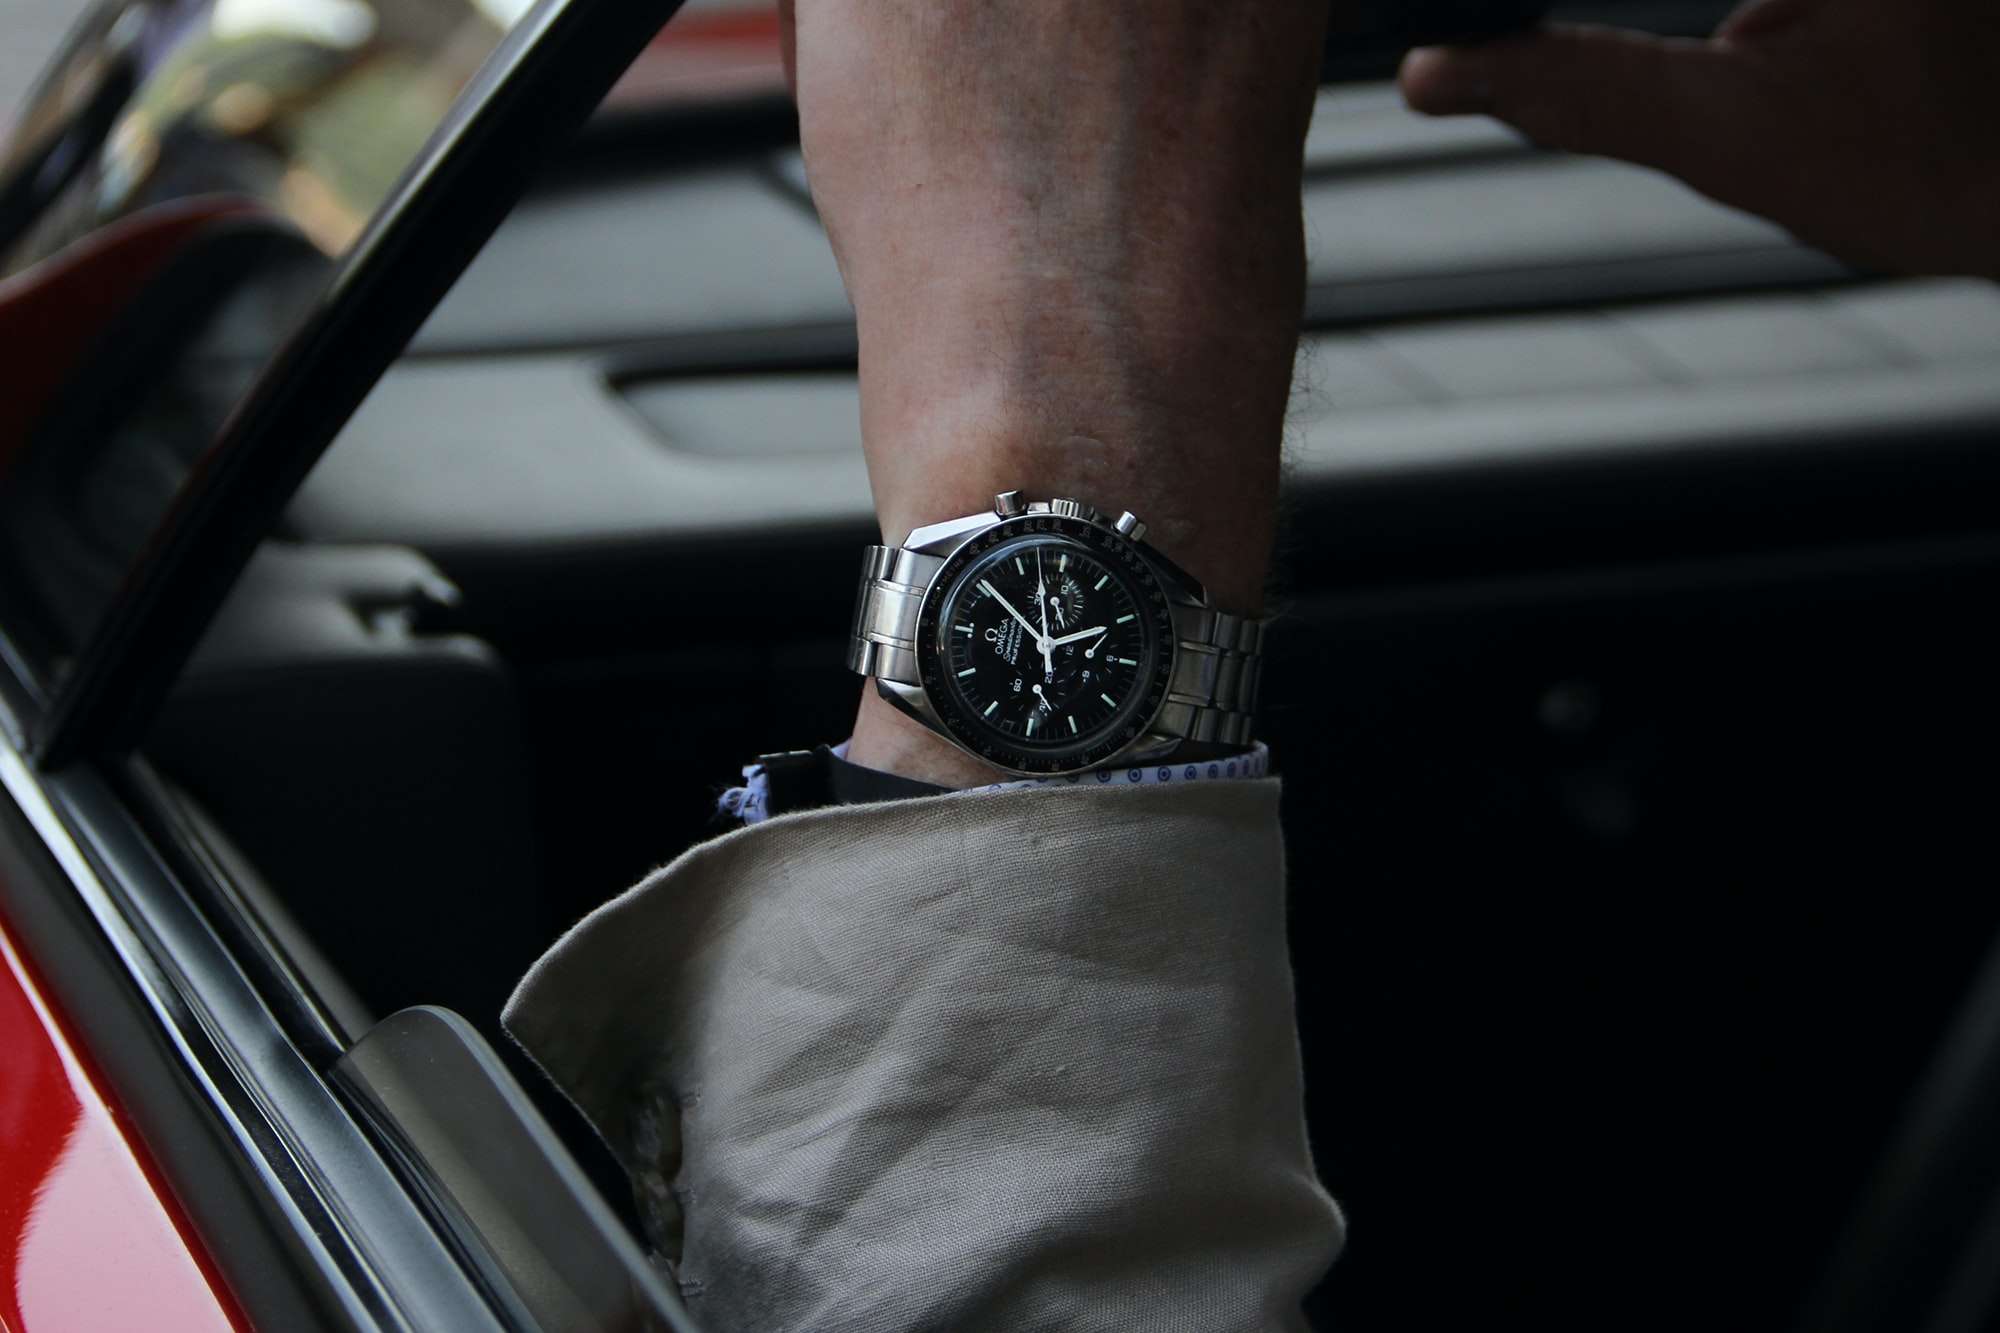 Photo Report: Watch And Car Spotting At The 2016 Concorso d'Eleganza Villa d'Este With A. Lange & Söhne Photo Report: Watch And Car Spotting At The 2016 Concorso d'Eleganza Villa d'Este With A. Lange & Söhne 3